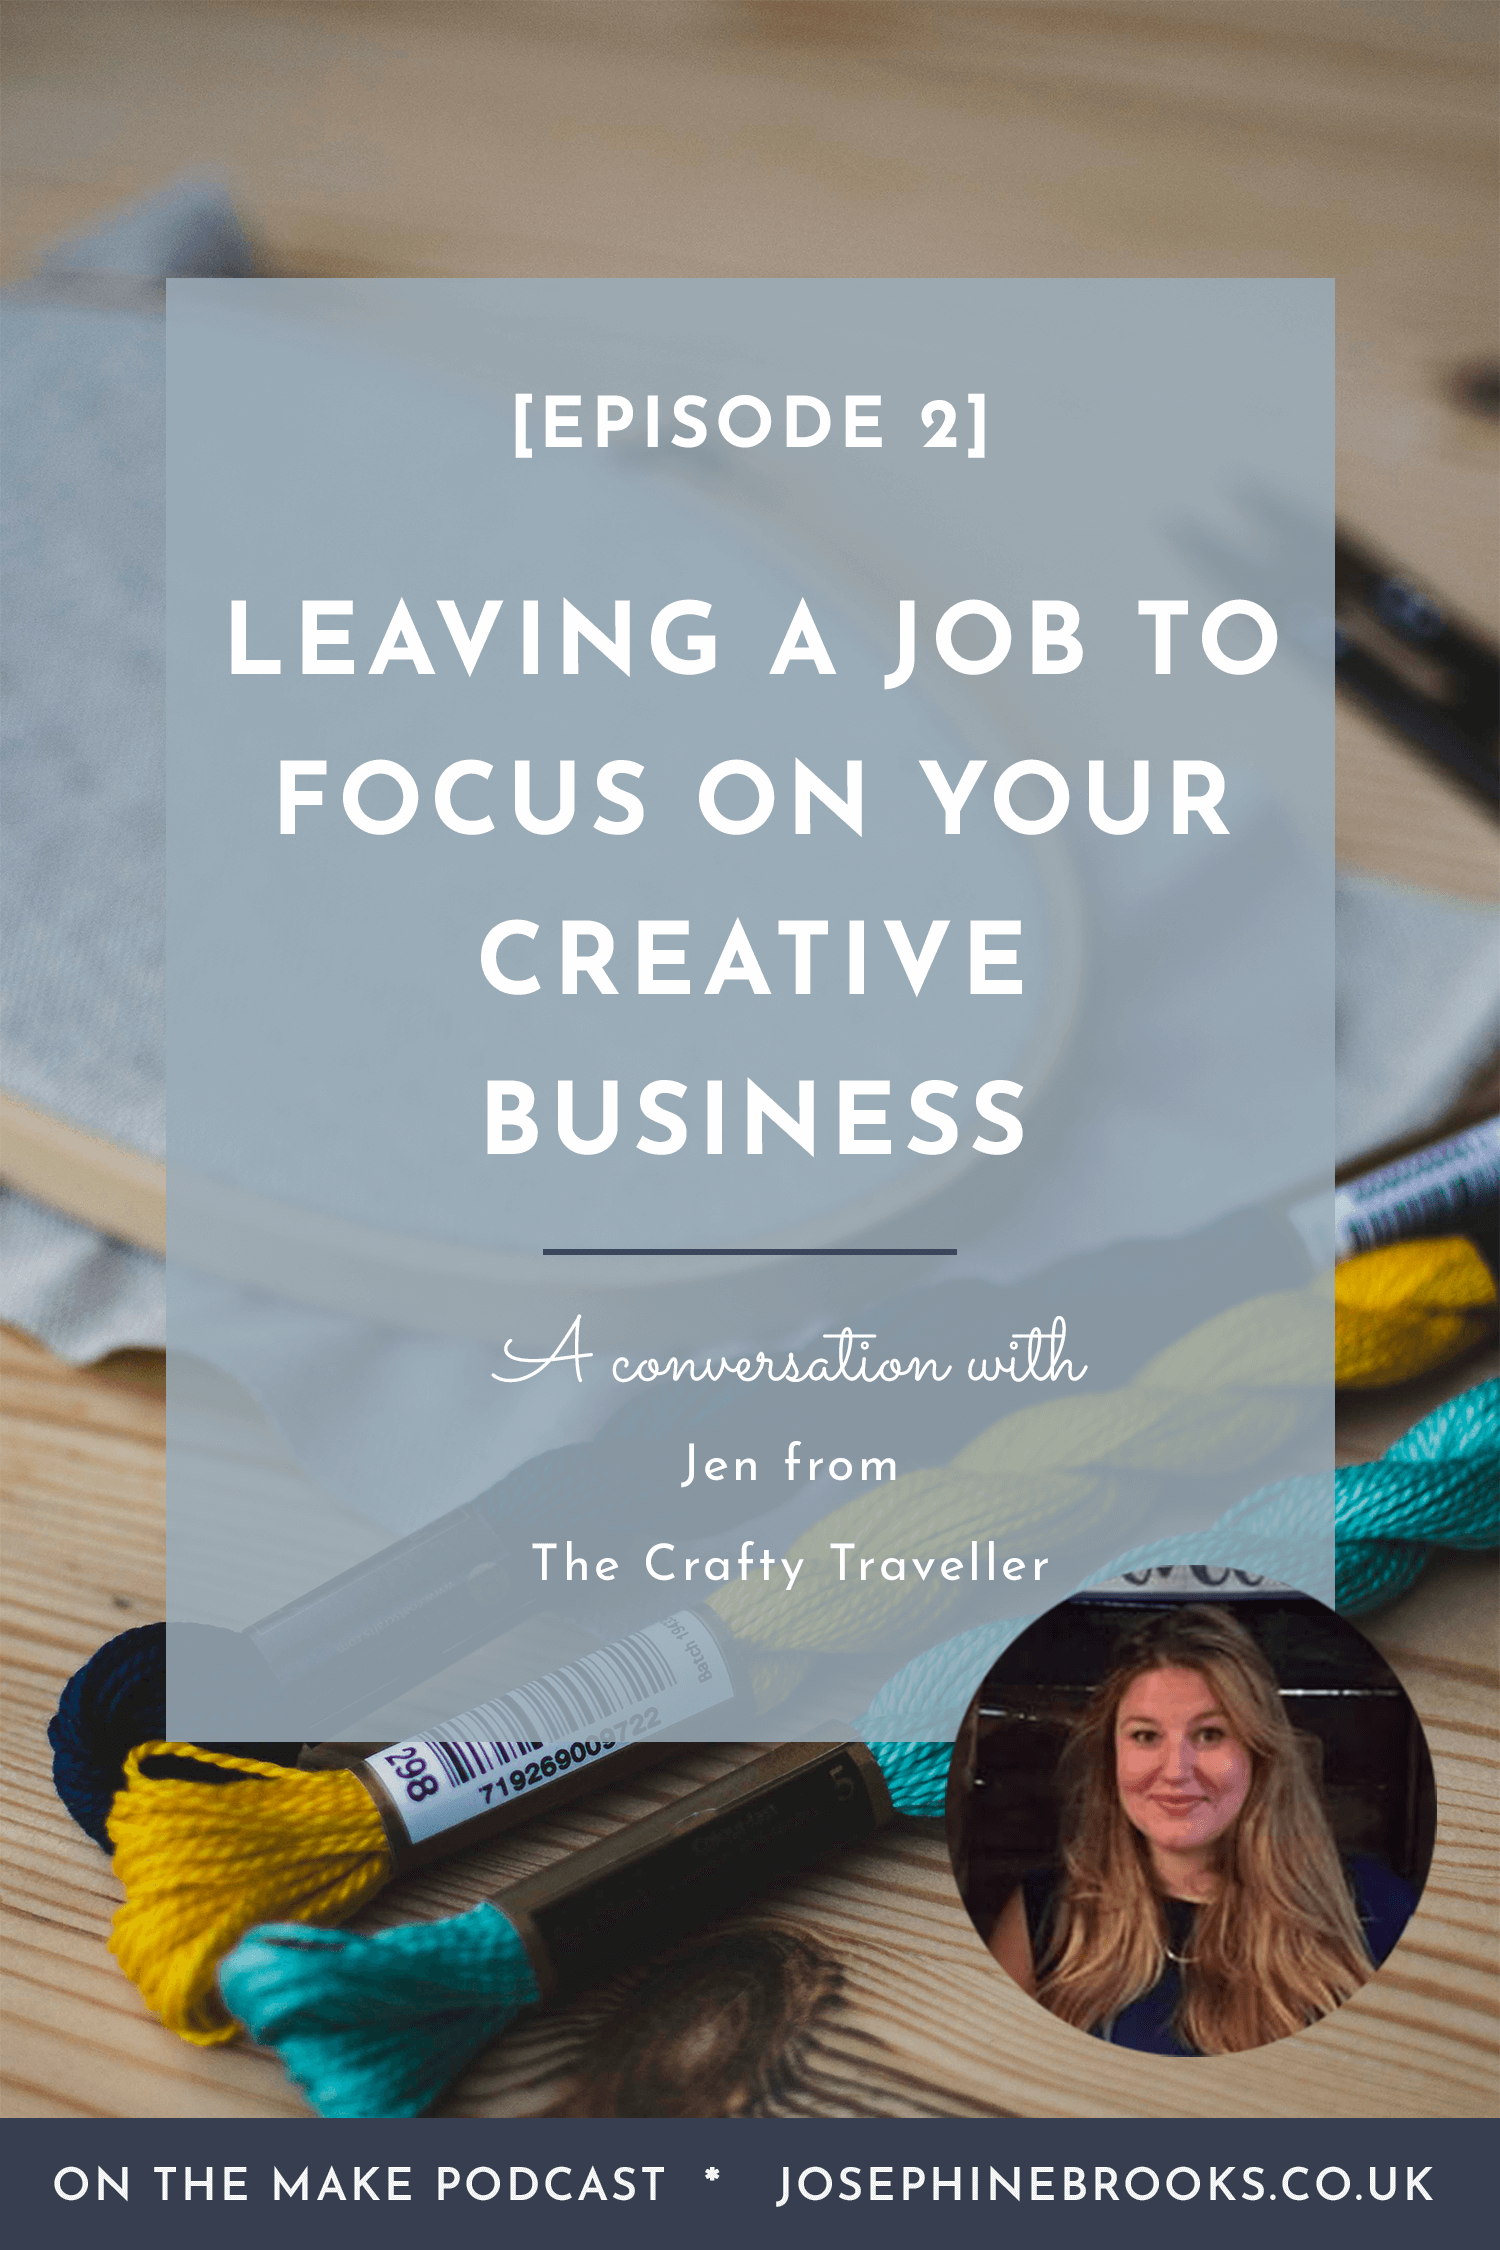 On The Make Podcast Episode 2 with Jen from The Crafty Traveller - leaving employment to focus on your creative business